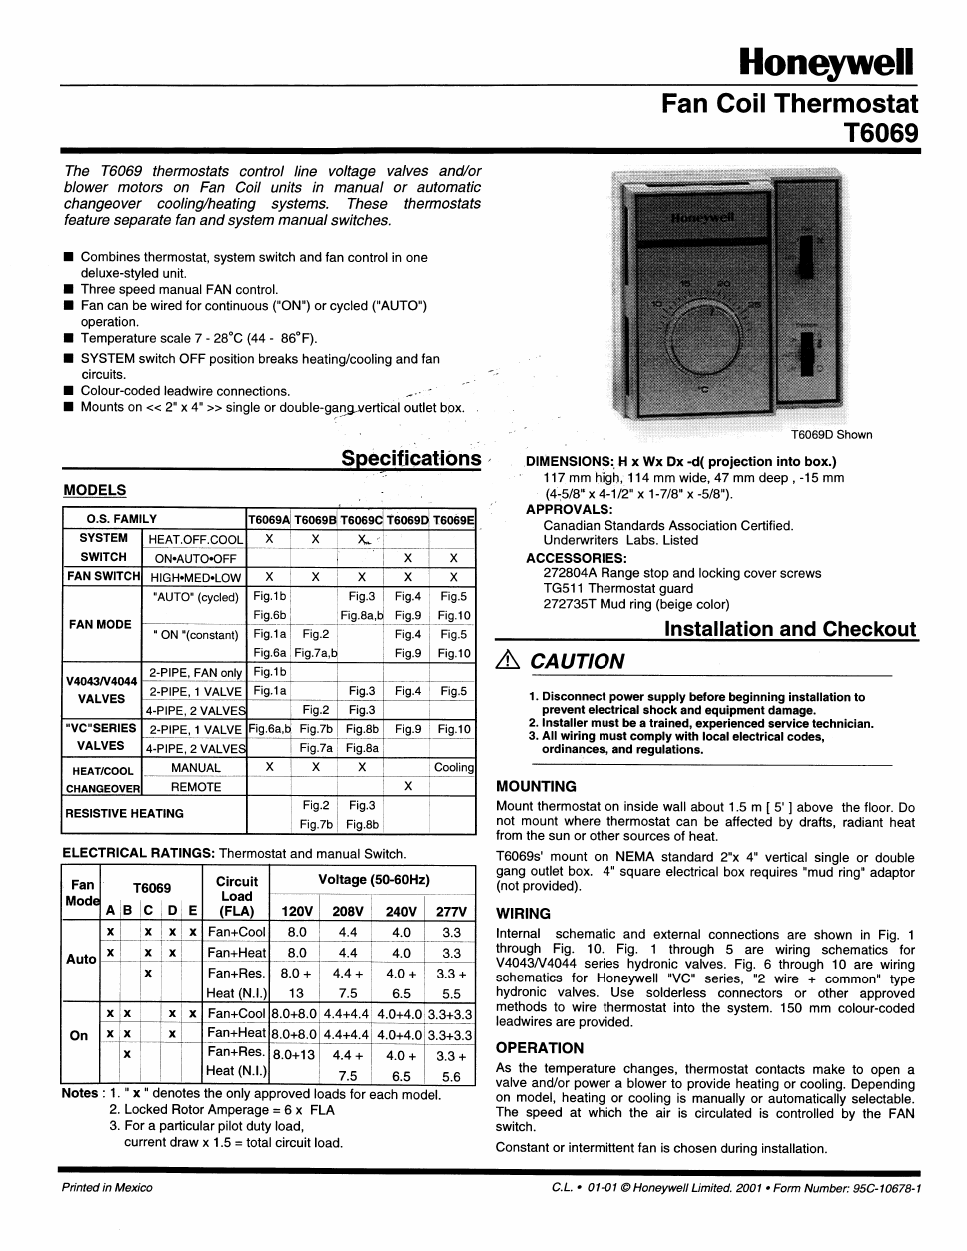 Honeywell Thermostat T6069 Users Manual Free Pdf Wiring Background Image